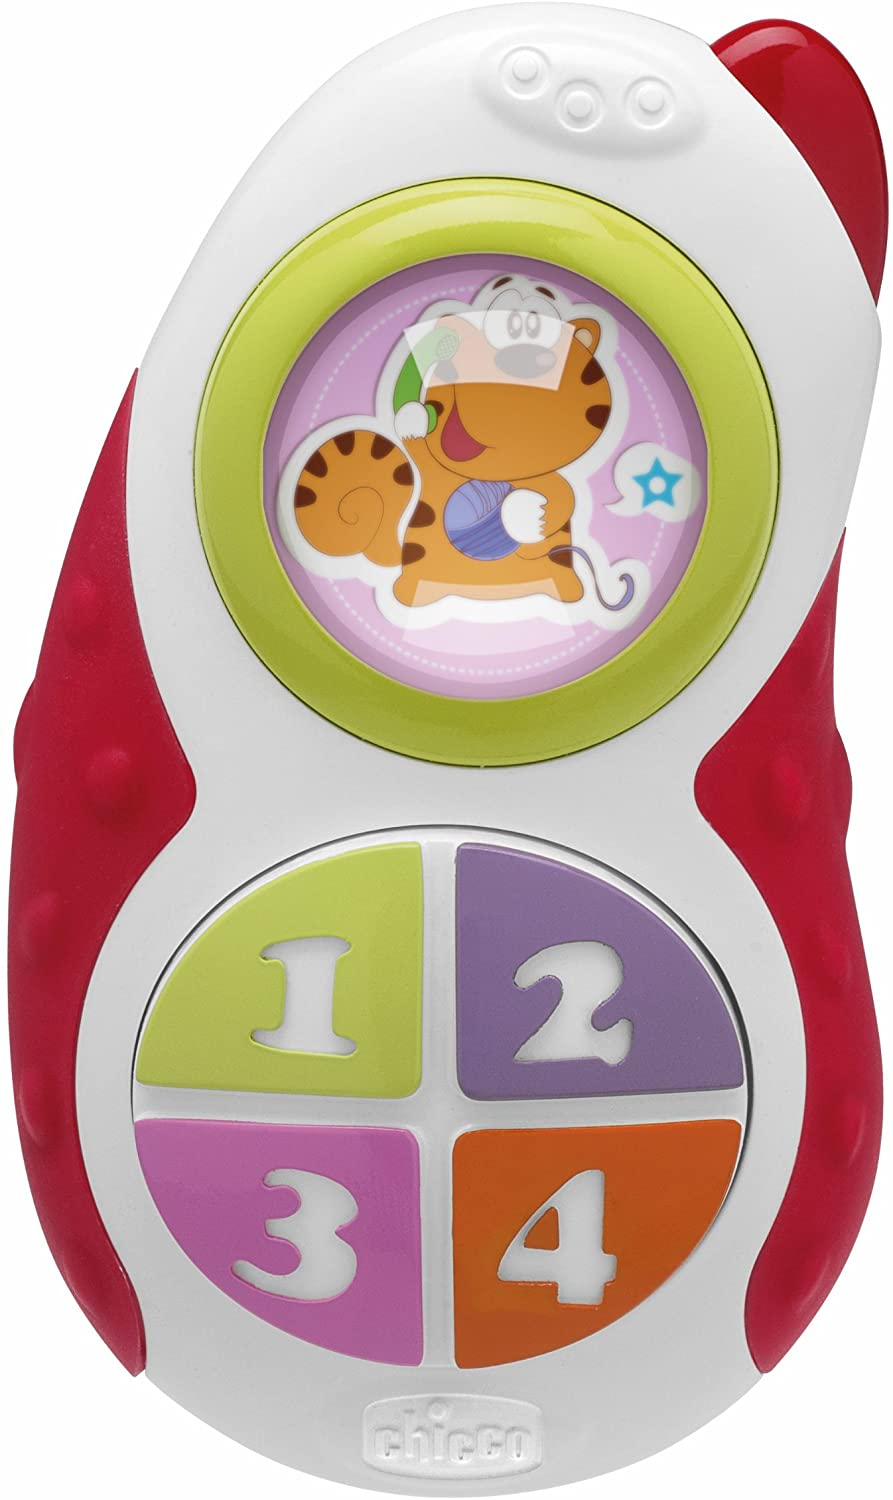 BABY PHONE COLORIDO - CHICCO